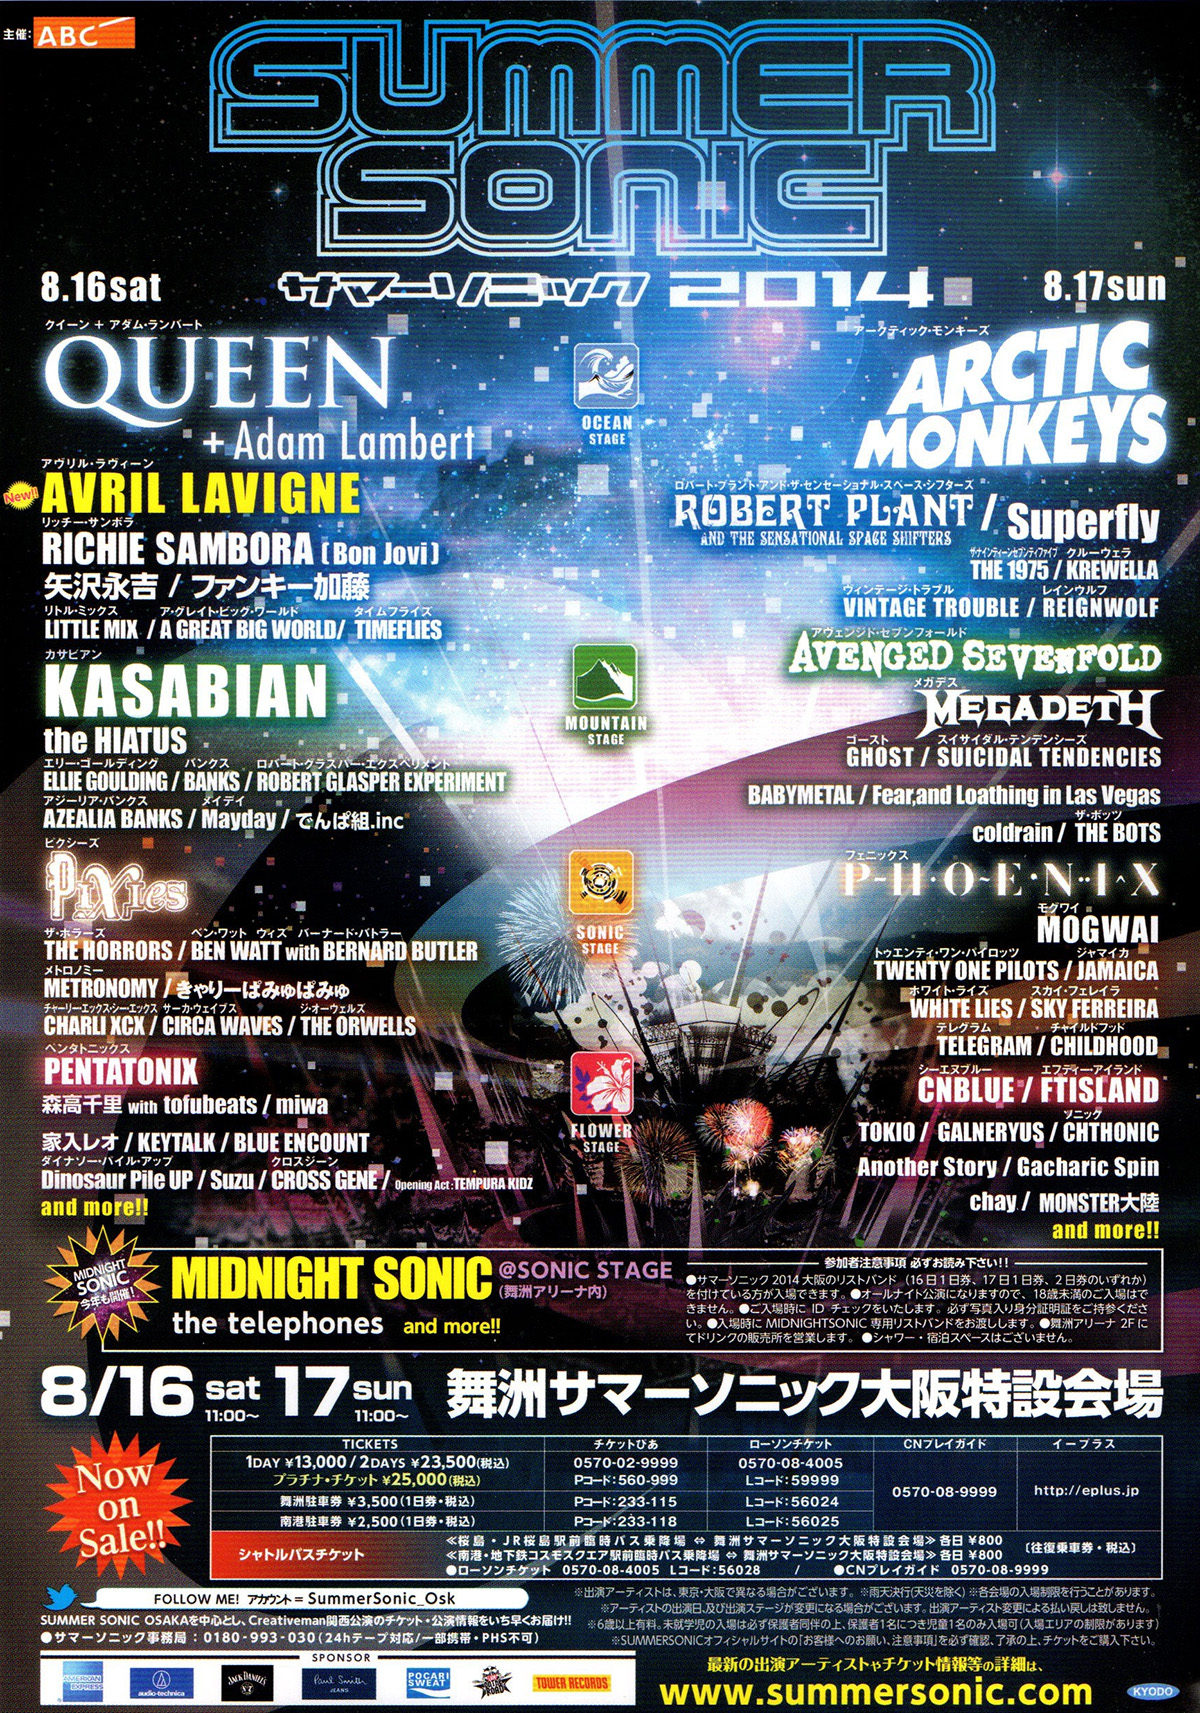 Queen + Adam Lambert at the Summer Sonic on 16.08.2014